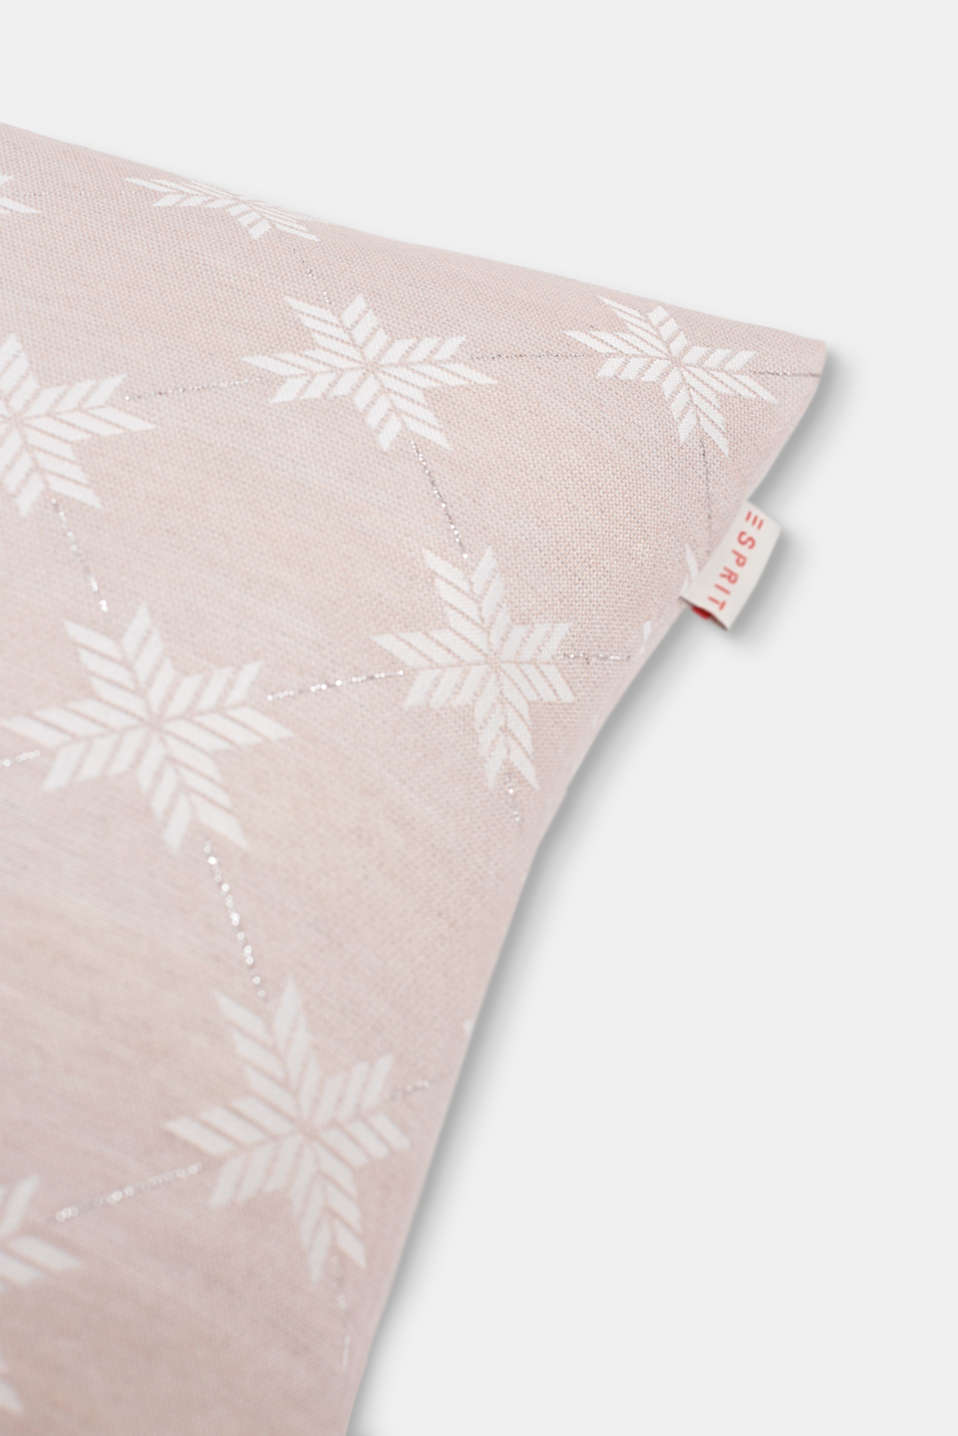 Cushion cover with a star motif, ROSE, detail image number 1